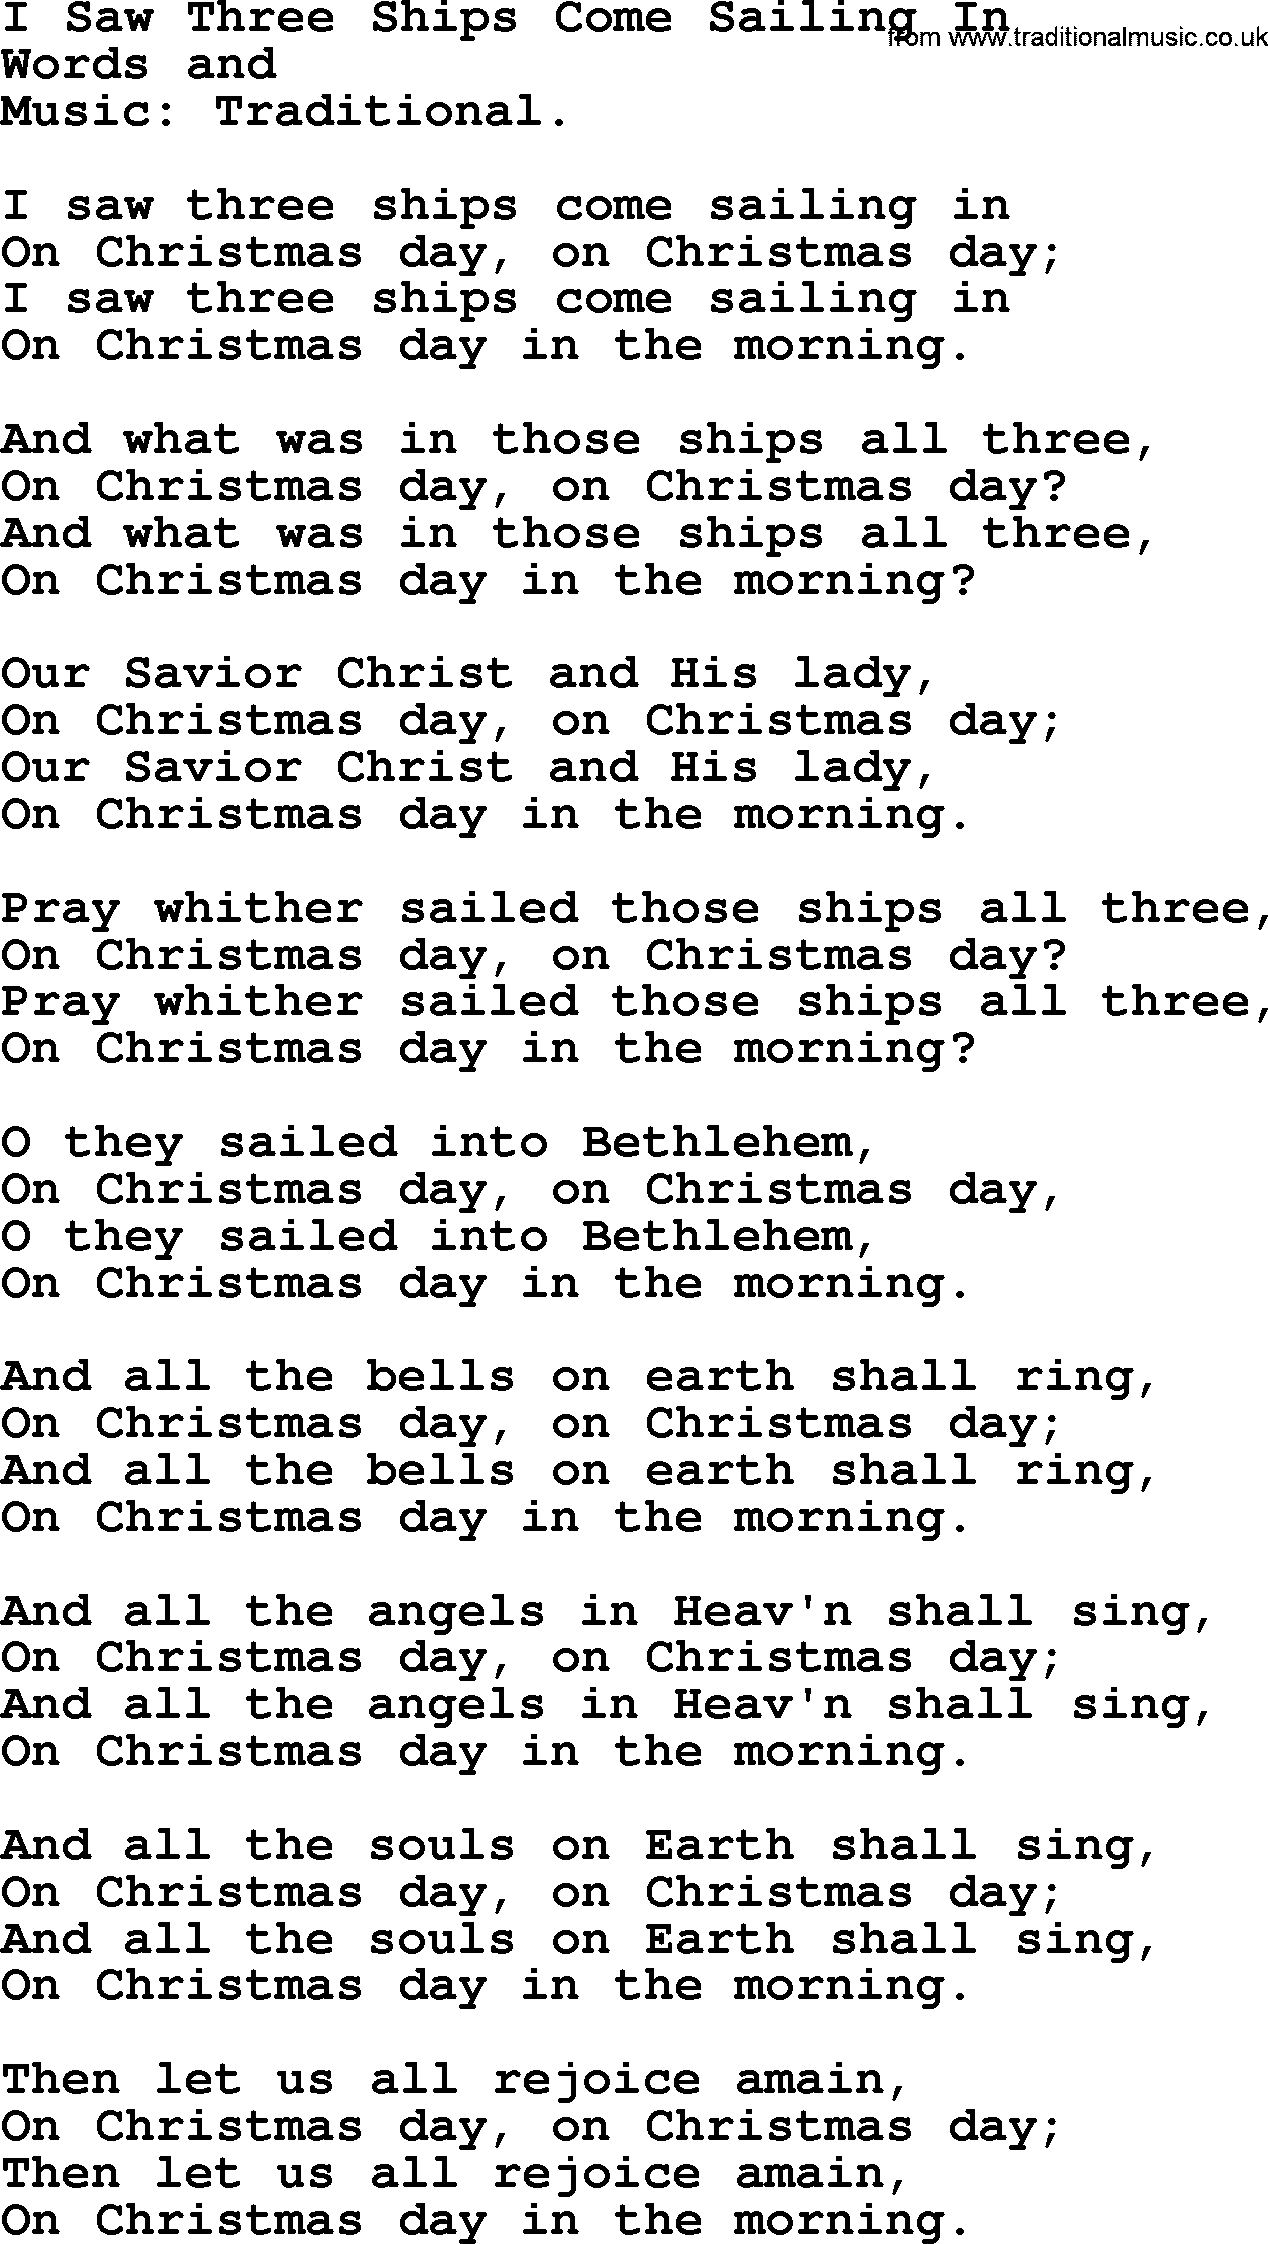 Christmas Hymns, Carols and Songs, title: I Saw Three Ships Come Sailing In - complete lyrics ...